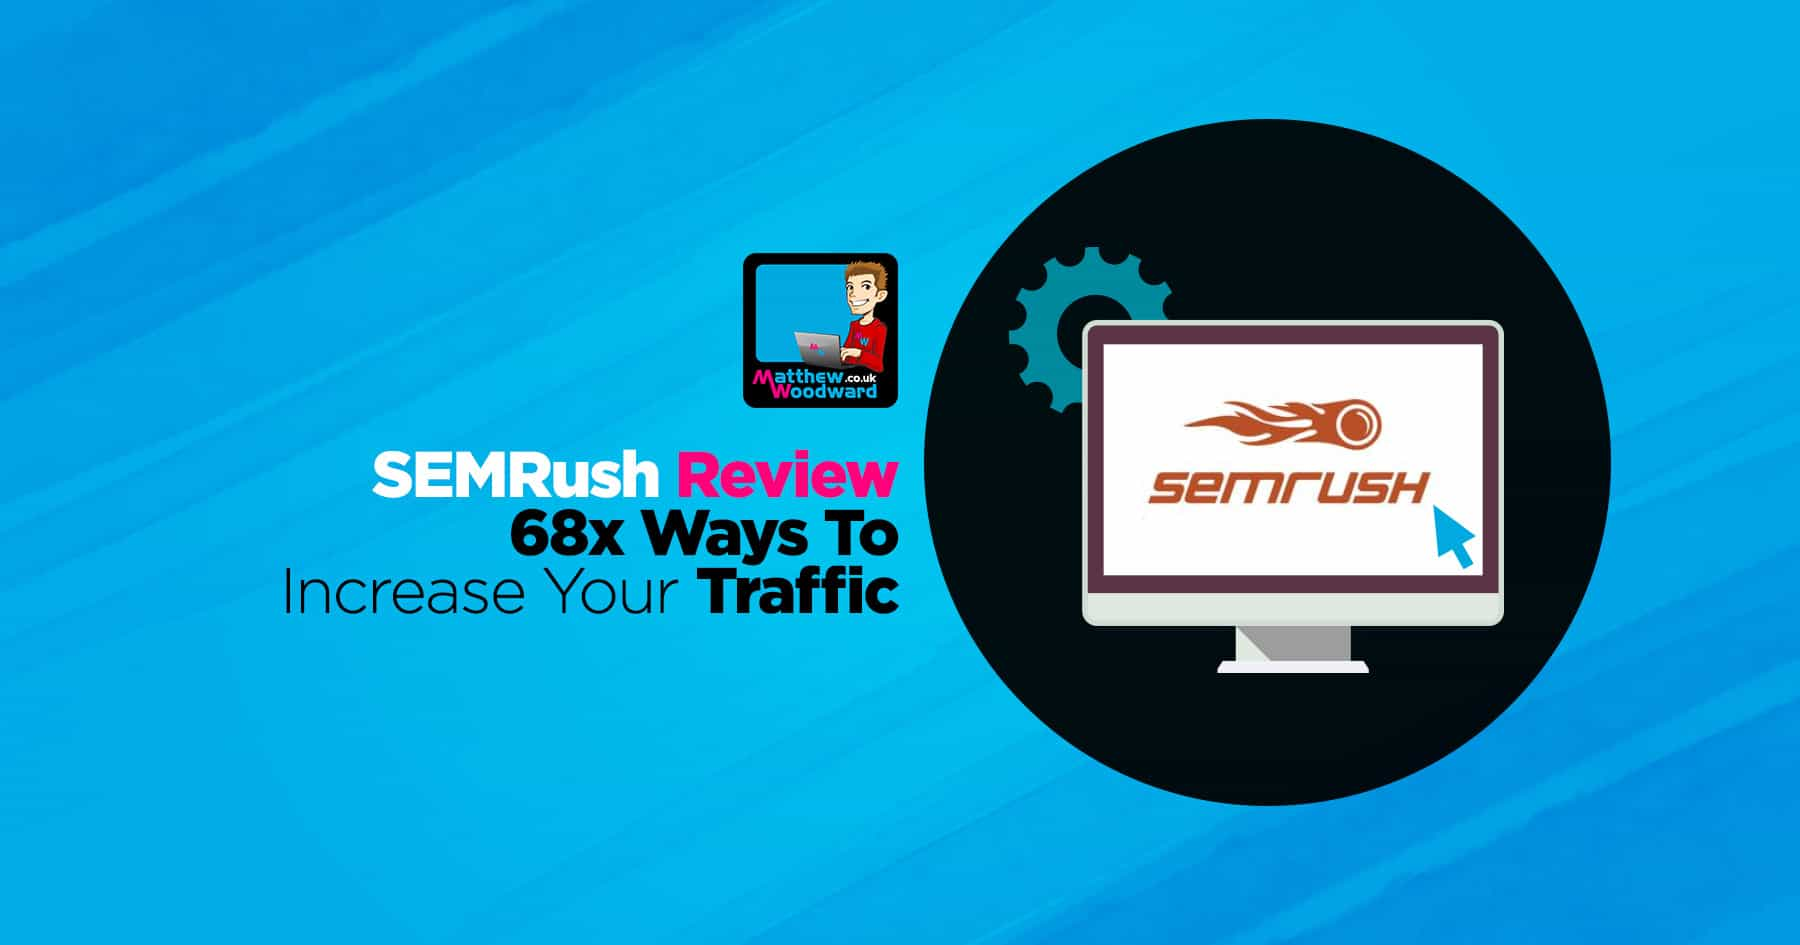 Seo Software Semrush Features Youtube